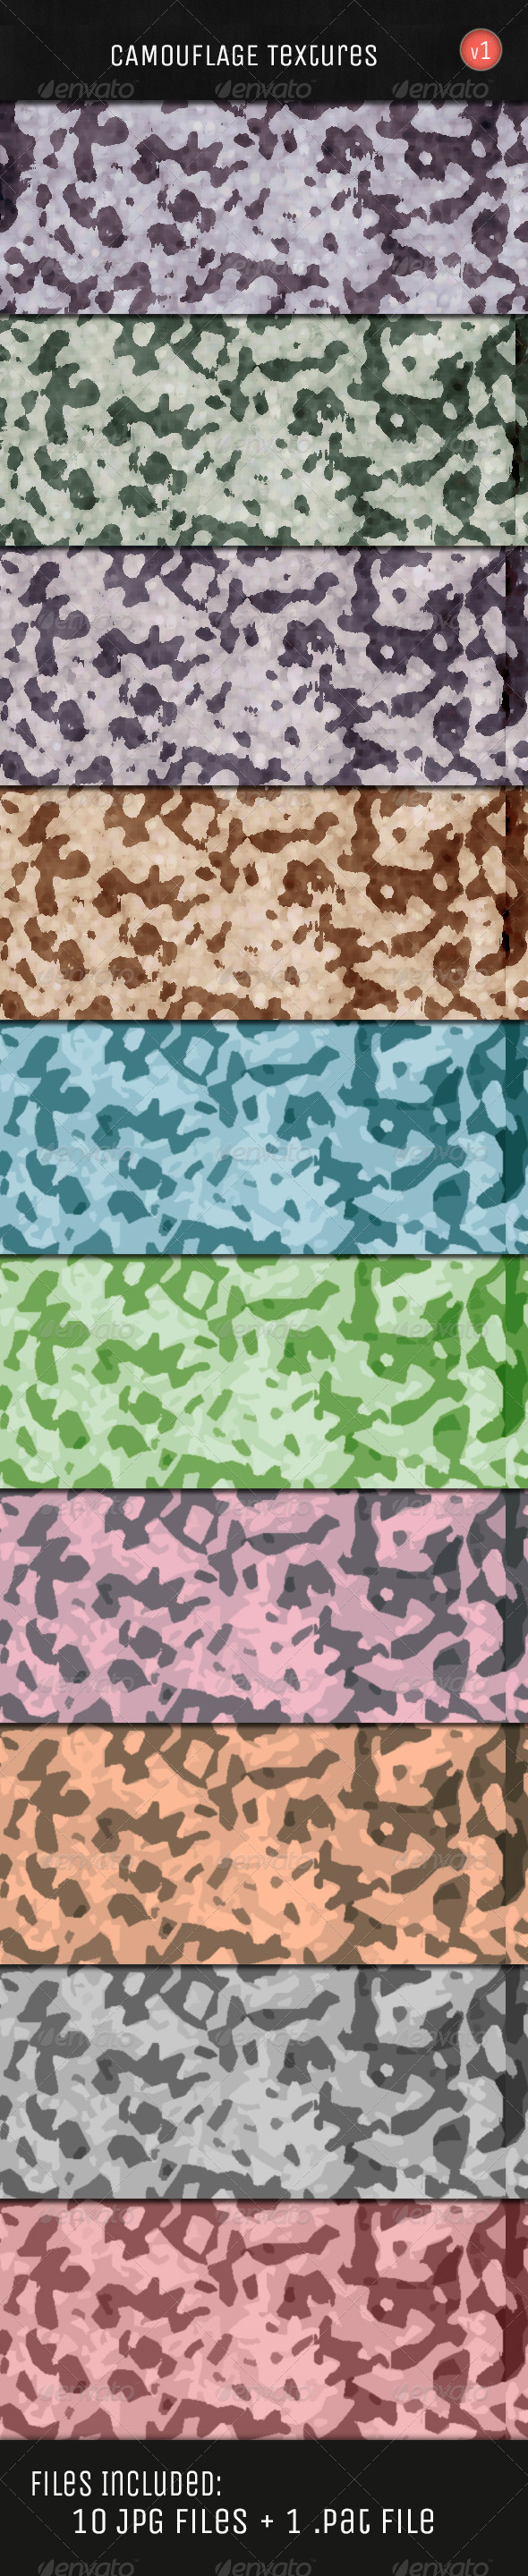 GraphicRiver Camouflage Textures 5174393